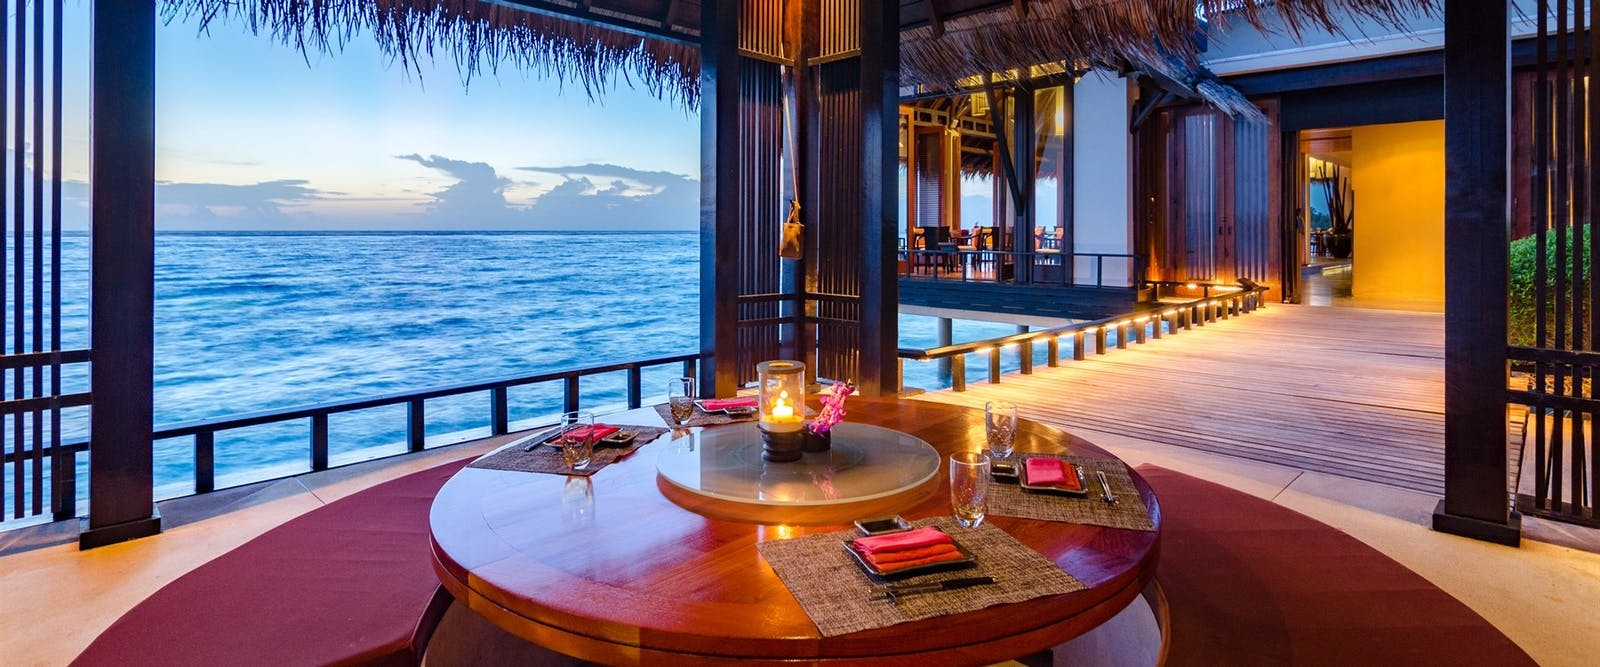 Tapasake Overwater Restaurant at One&Only Reethi Rah, Maldives, Indian Ocean